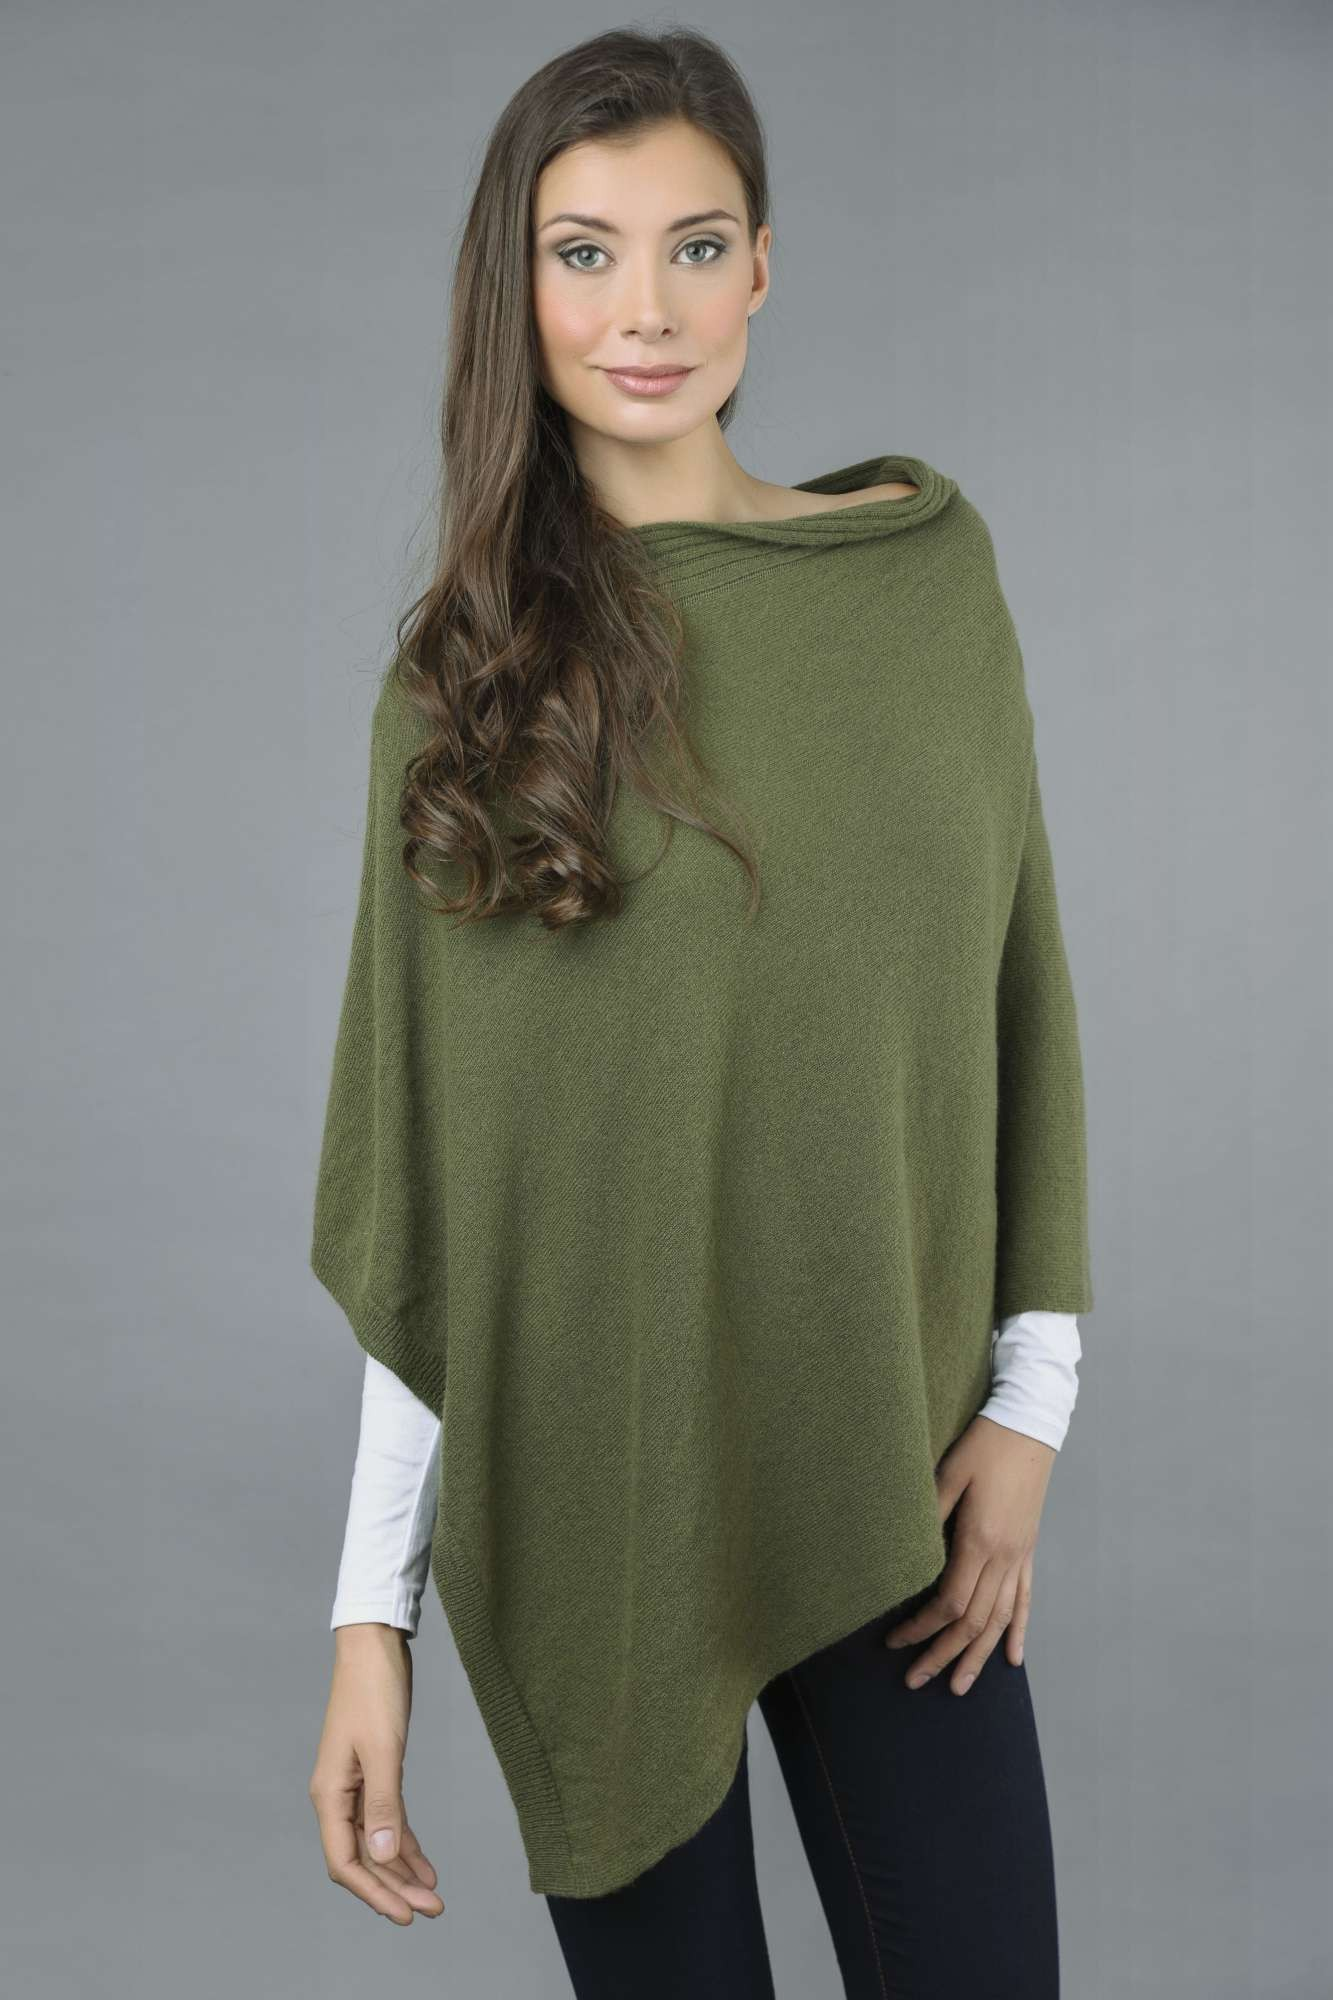 Pure Cashmere Knitted Asymmetric Poncho Wrap in Loden Green Italy in Cashmere